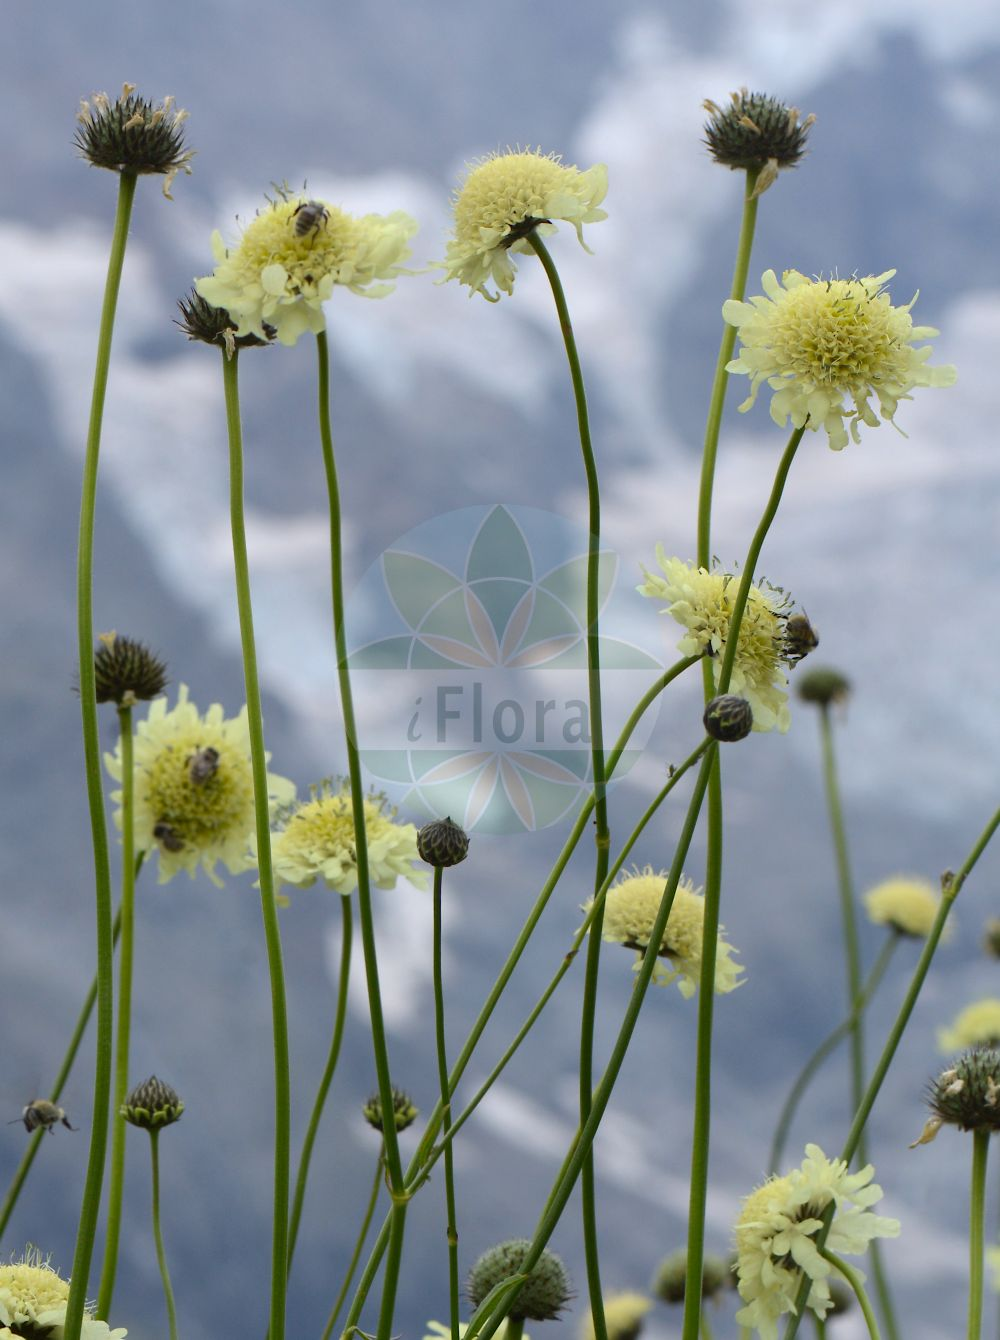 Foto von Cephalaria gigantea. Das Bild zeigt Blatt und Bluete. Das Foto wurde in Station Alpine Joseph Fourier, Col du Lautaret, Auvergne-Rhône-Alpes, Frankreich aufgenommen. ---- Photo of Cephalaria gigantea.The image is showing leaf and flower.The picture was taken in Station Alpine Joseph Fourier, Col du Lautaret, Auvergne-Rhône-Alpes, France.(Cephalaria gigantea,Cephalaria tatarica,Scabiosa gigantea,Cephalaria,Caprifoliaceae,Geissblattgewaechse,Honeysuckle family,Blatt,Bluete,leaf,flower)